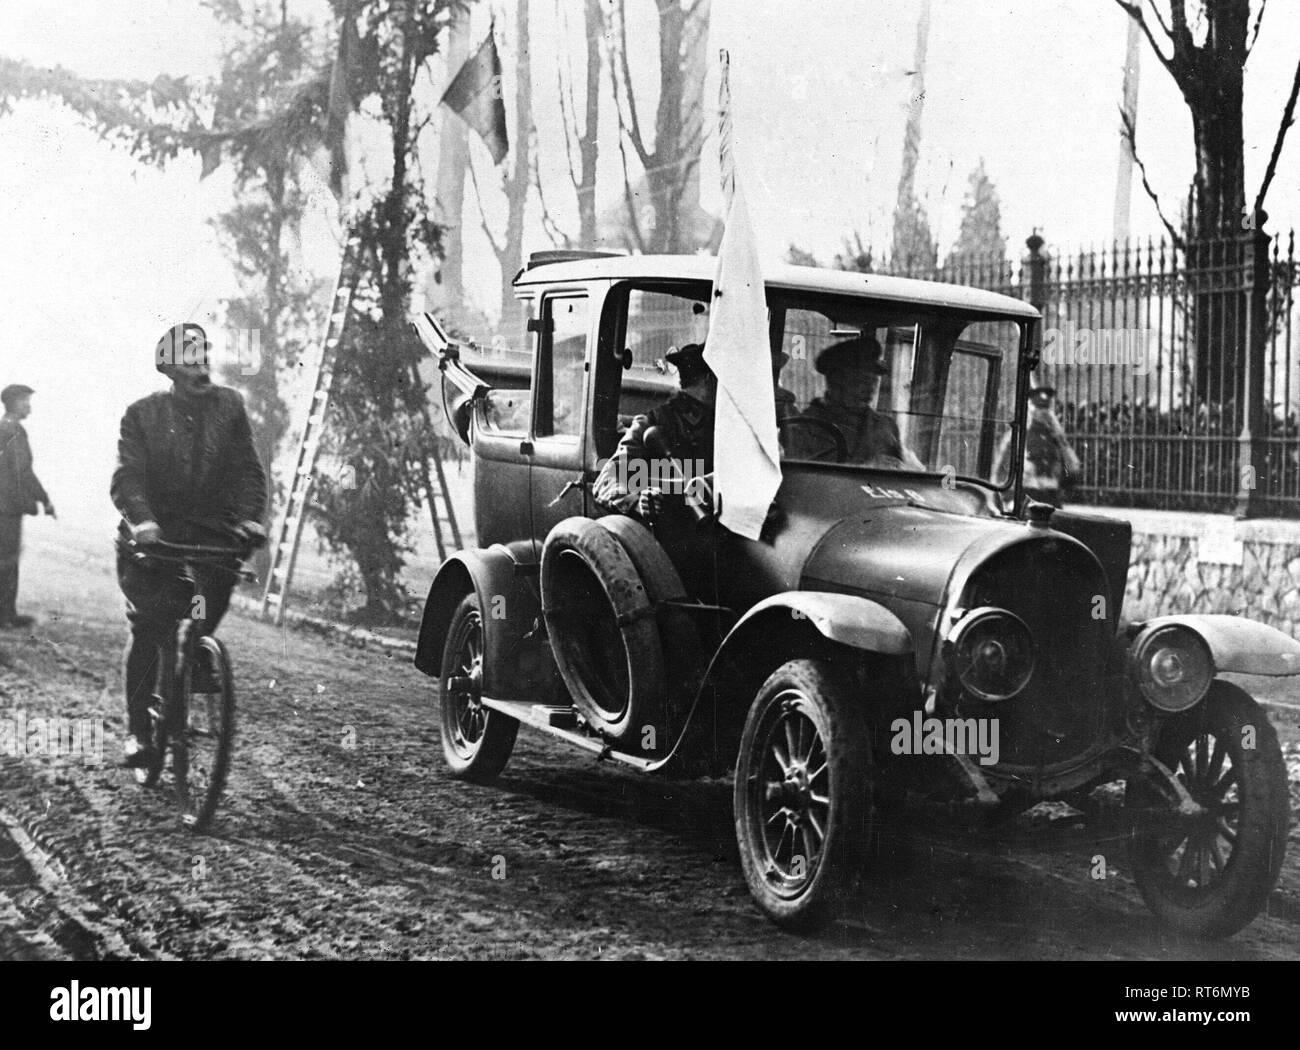 German officers pointing out the location of the mines they had layed along the roads and carious other places. They are seen in one of their own cars with a white flag on the machine - Stock Image